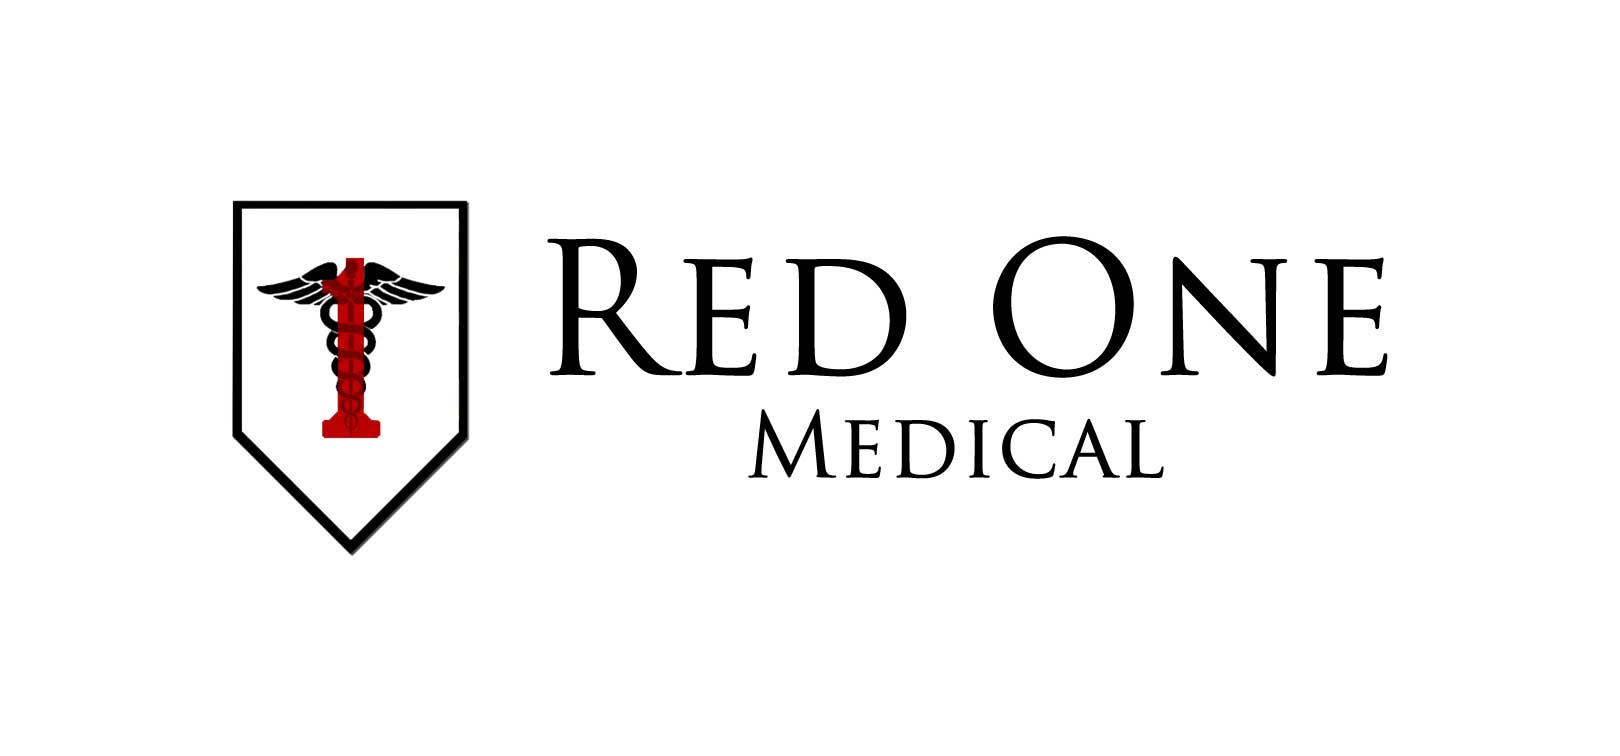 Red One Medical And AIONX Team Up To Bring Leading Antimicrobial Products To Government Market In Era Of Novel Coronavirus (COVID-19)